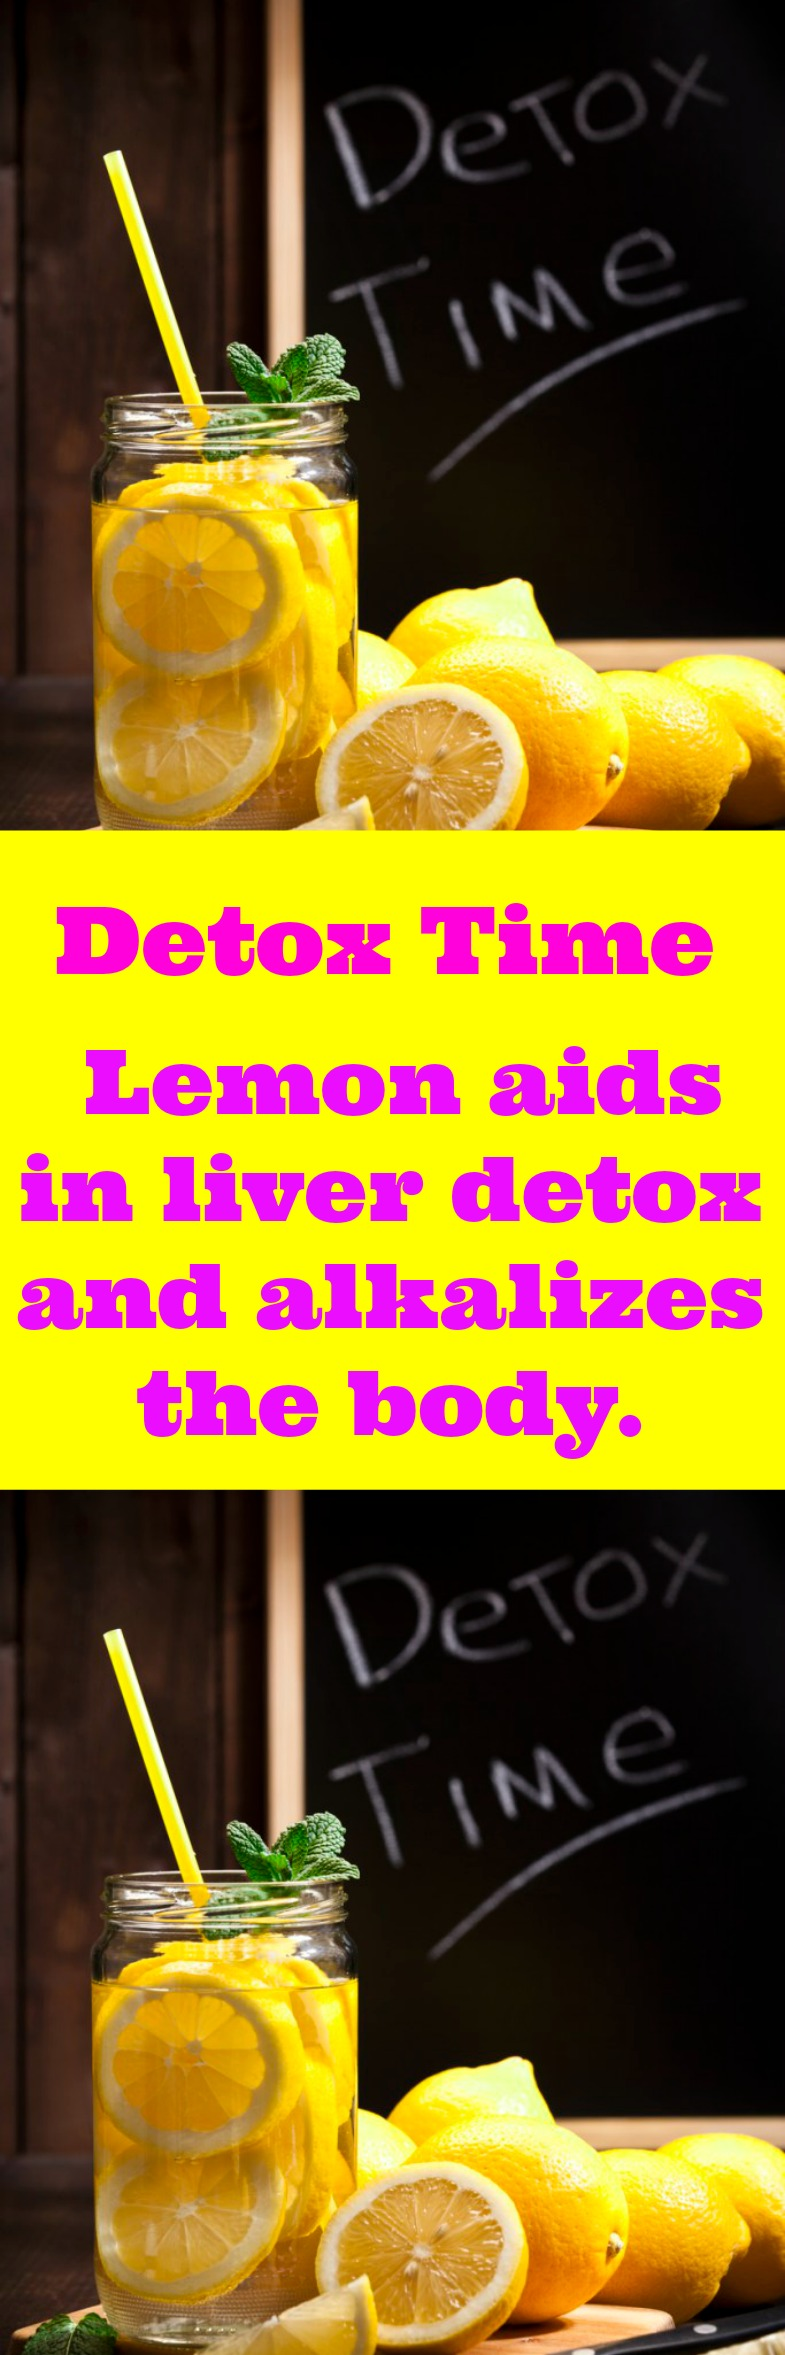 Lemon Mint Detox drink for weightloss and to reduce bloating. Lemon aids in liver detox and alkalizes the body.